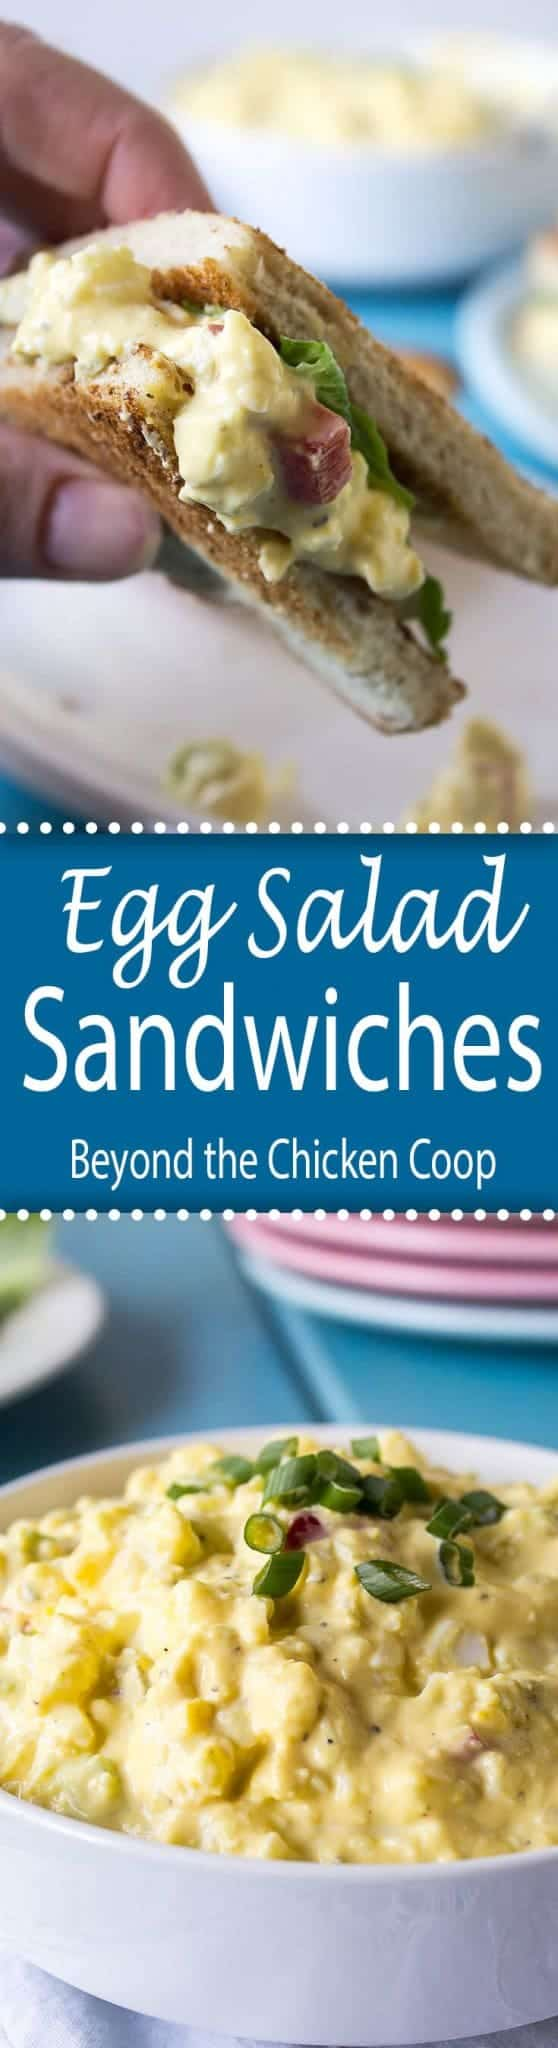 Egg salad sandwiches are a perfect way to use up all those Easter Eggs!